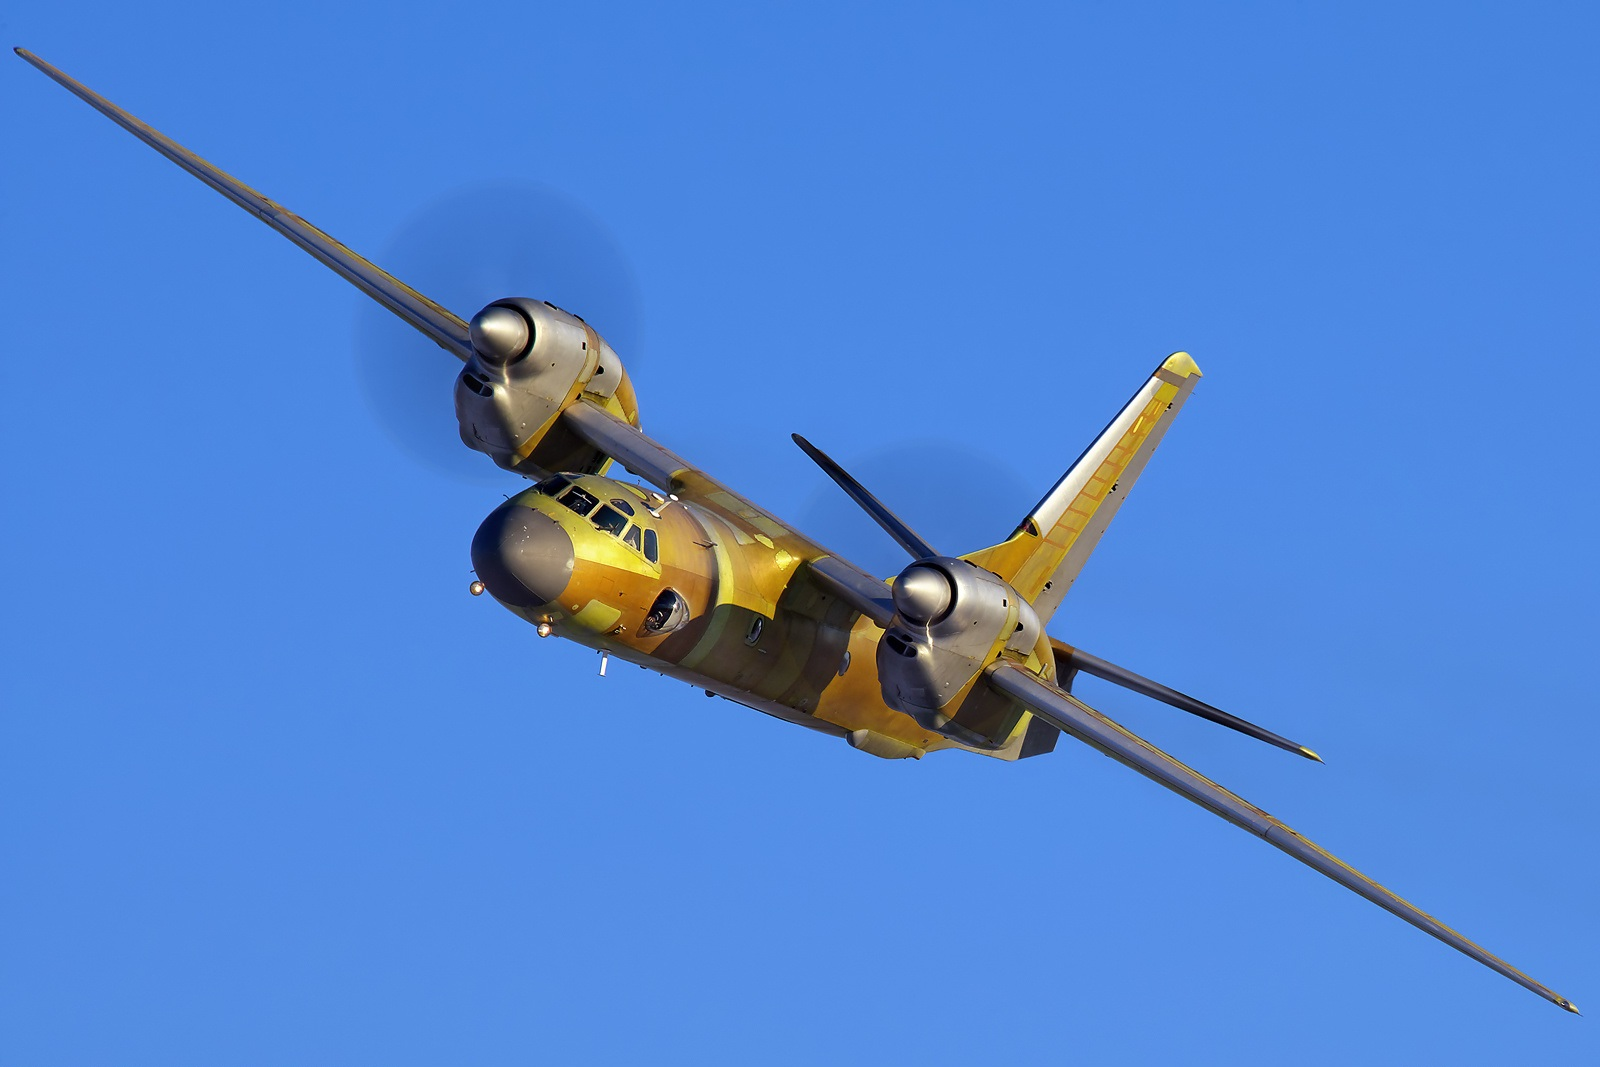 http://upload.wikimedia.org/wikipedia/commons/2/28/Iraqi_Air_Force_Antonov_An-32B.jpg